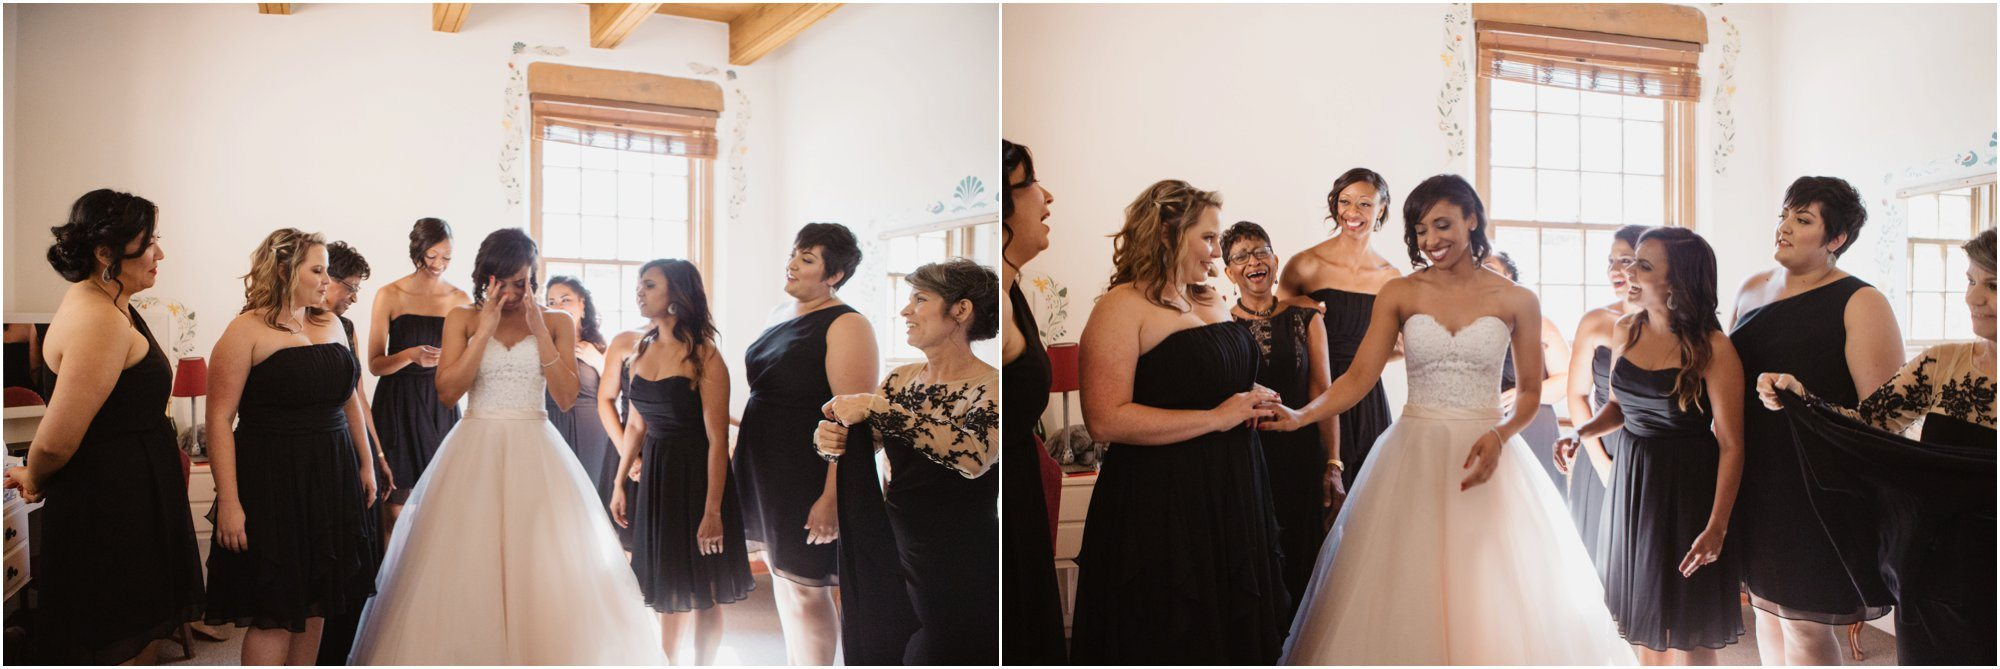 0023albuquerque-wedding-photographer_-santa-fe-wedding-photography_blue-rose-studio